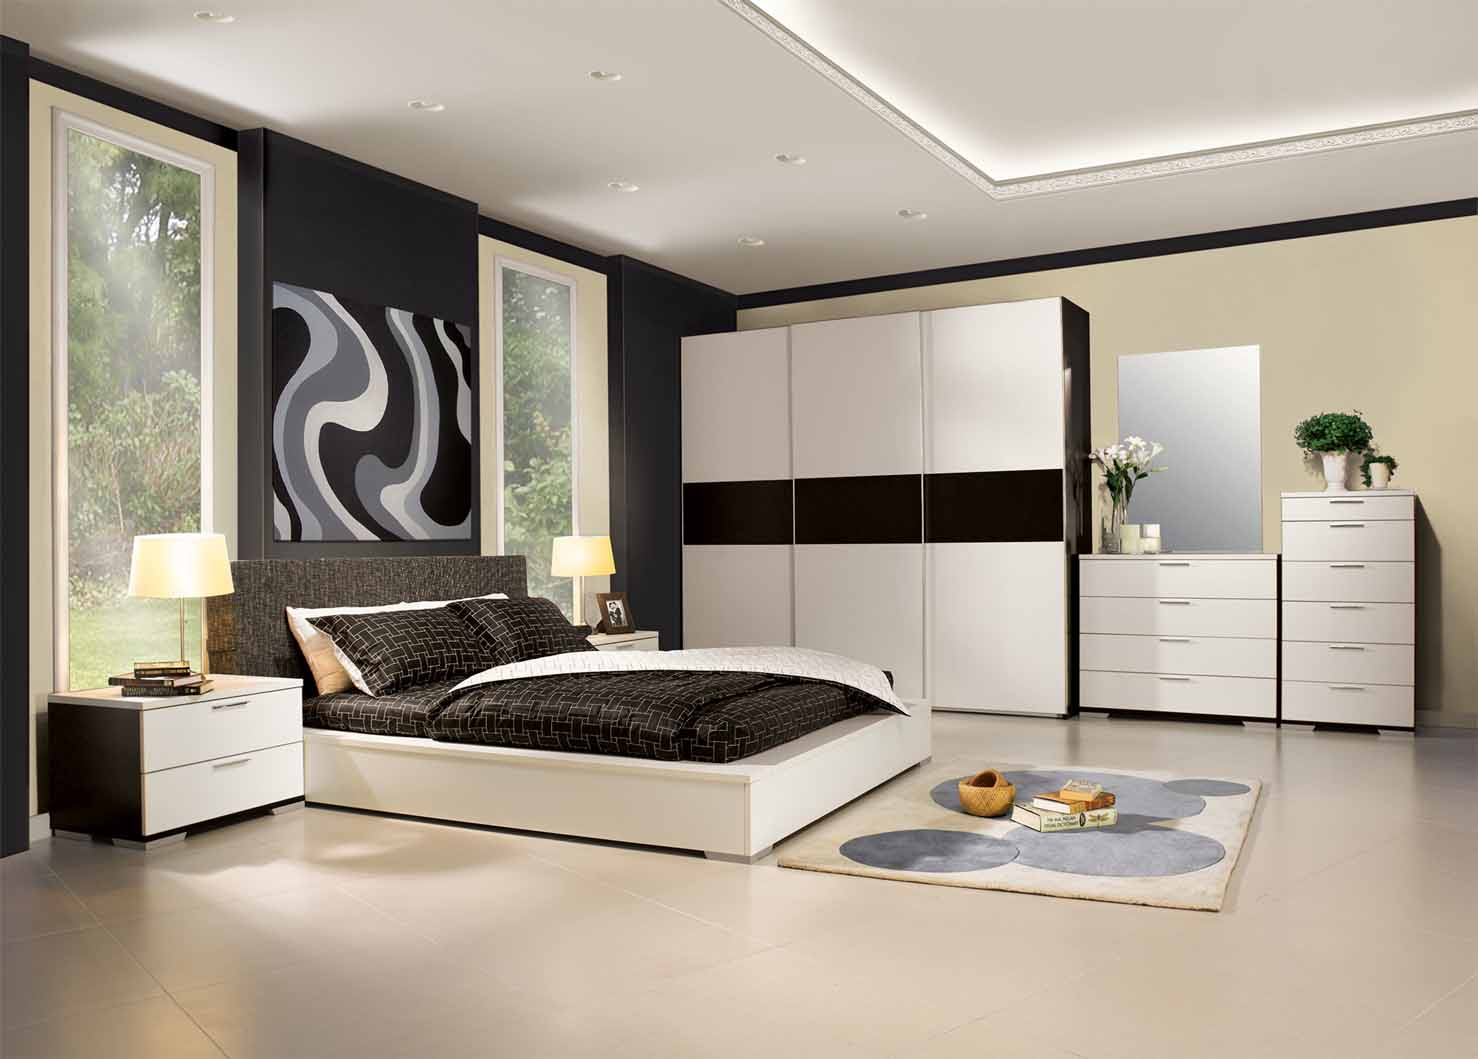 Bedroom Chair Design Ideas Power Chairside End Table Canada Awesome Bedrooms Pictures 2014 Decorating